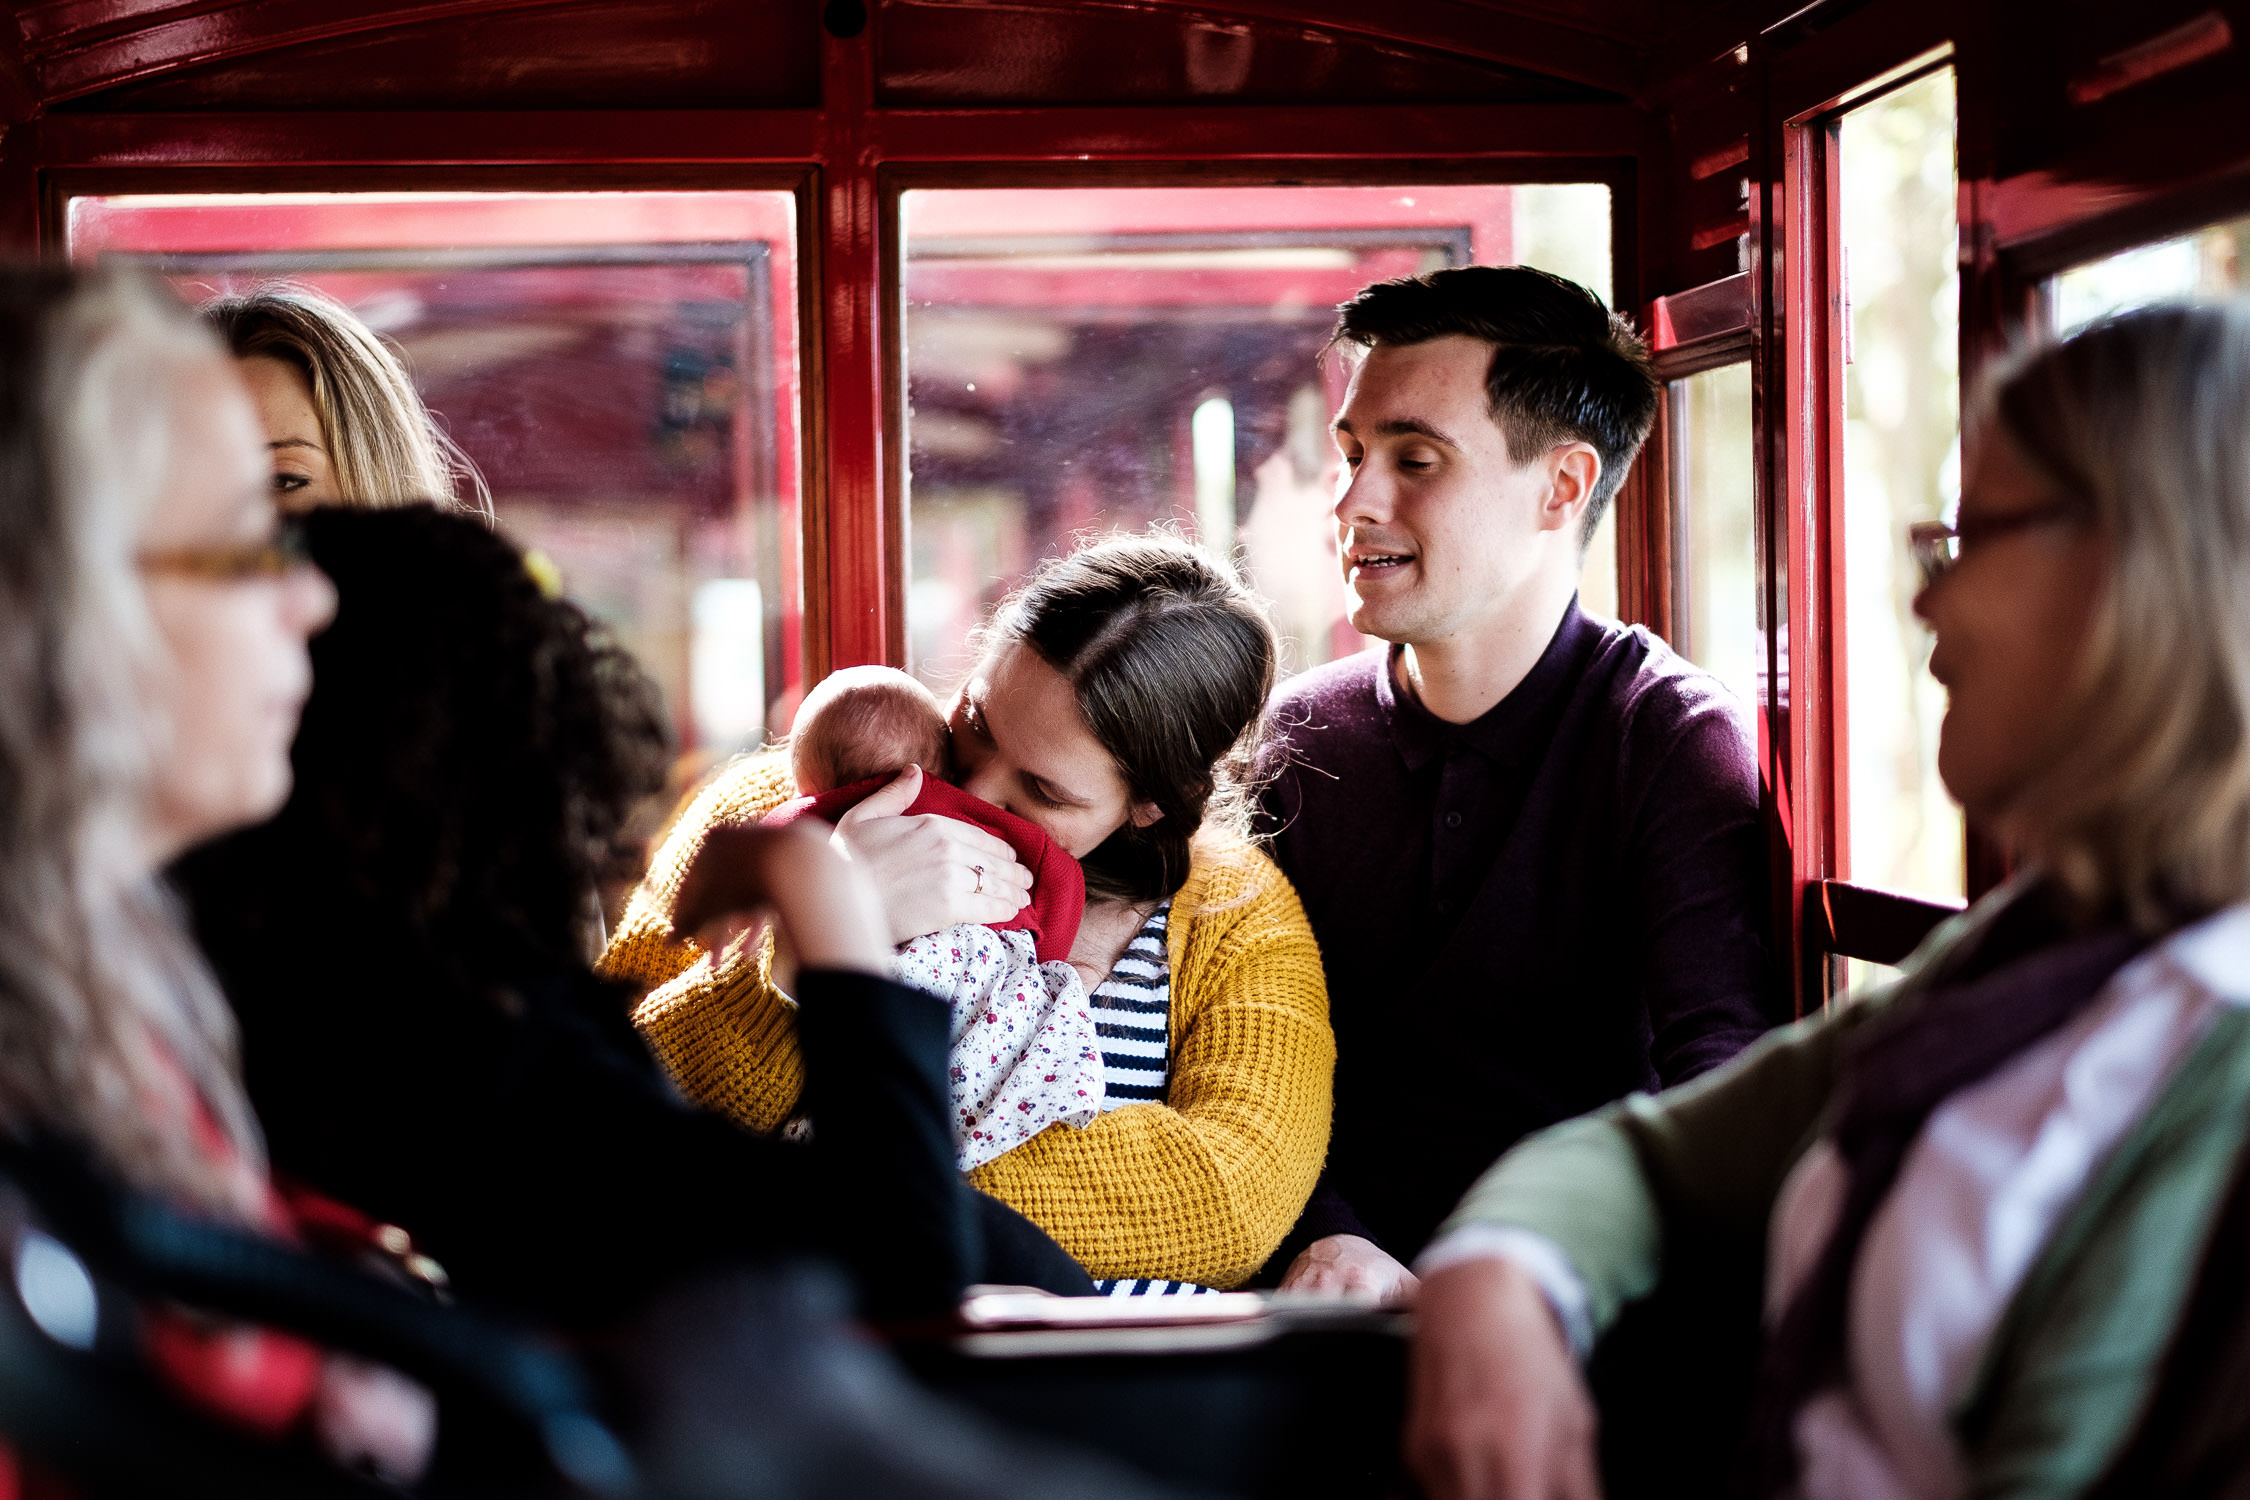 mother kissing baby on train